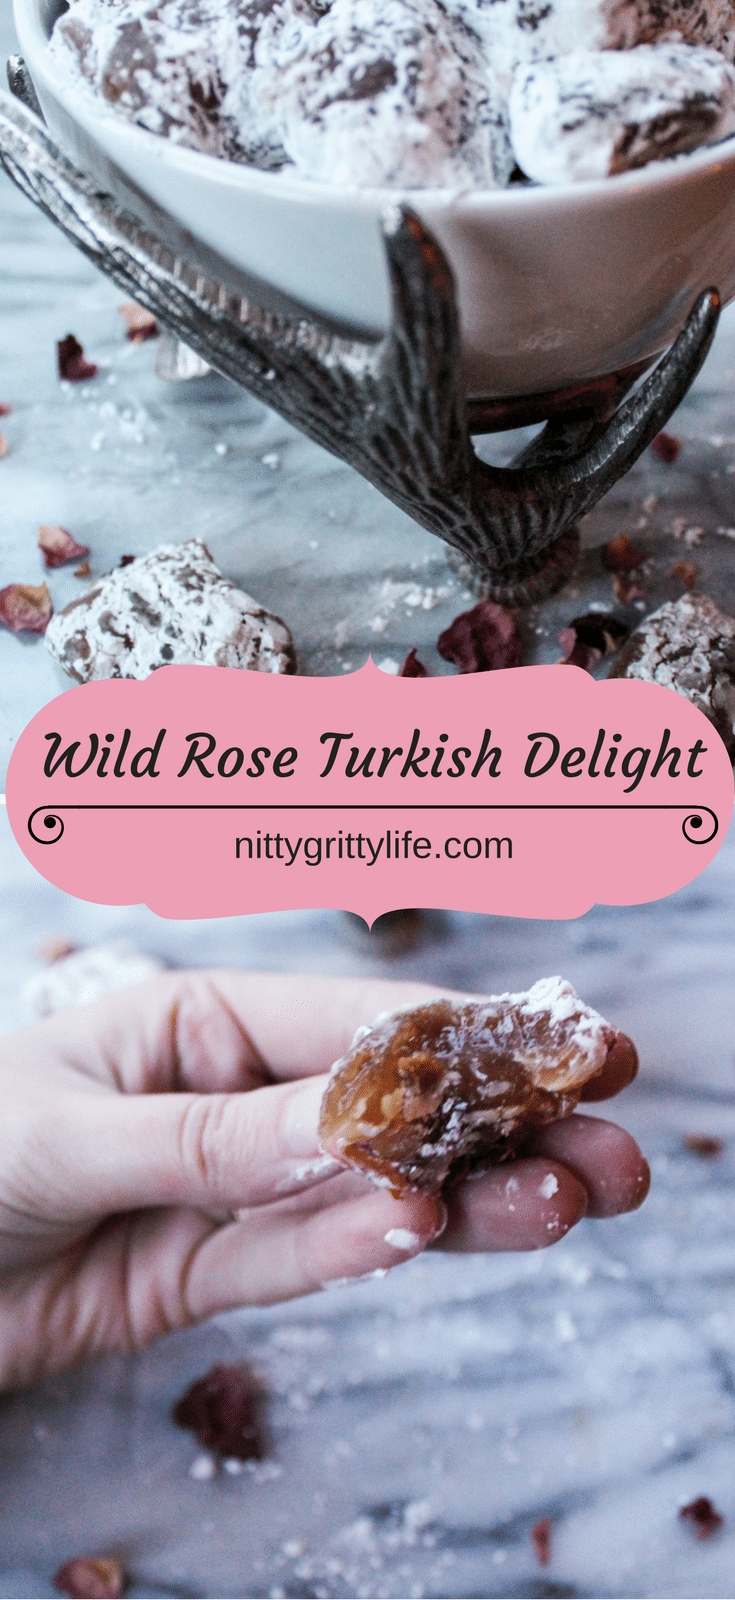 If nostalgia, magic and wonder had a flavor, it would be like that of this Wild Rose Turkish Delight. Layers of rose flavored, candy confection.